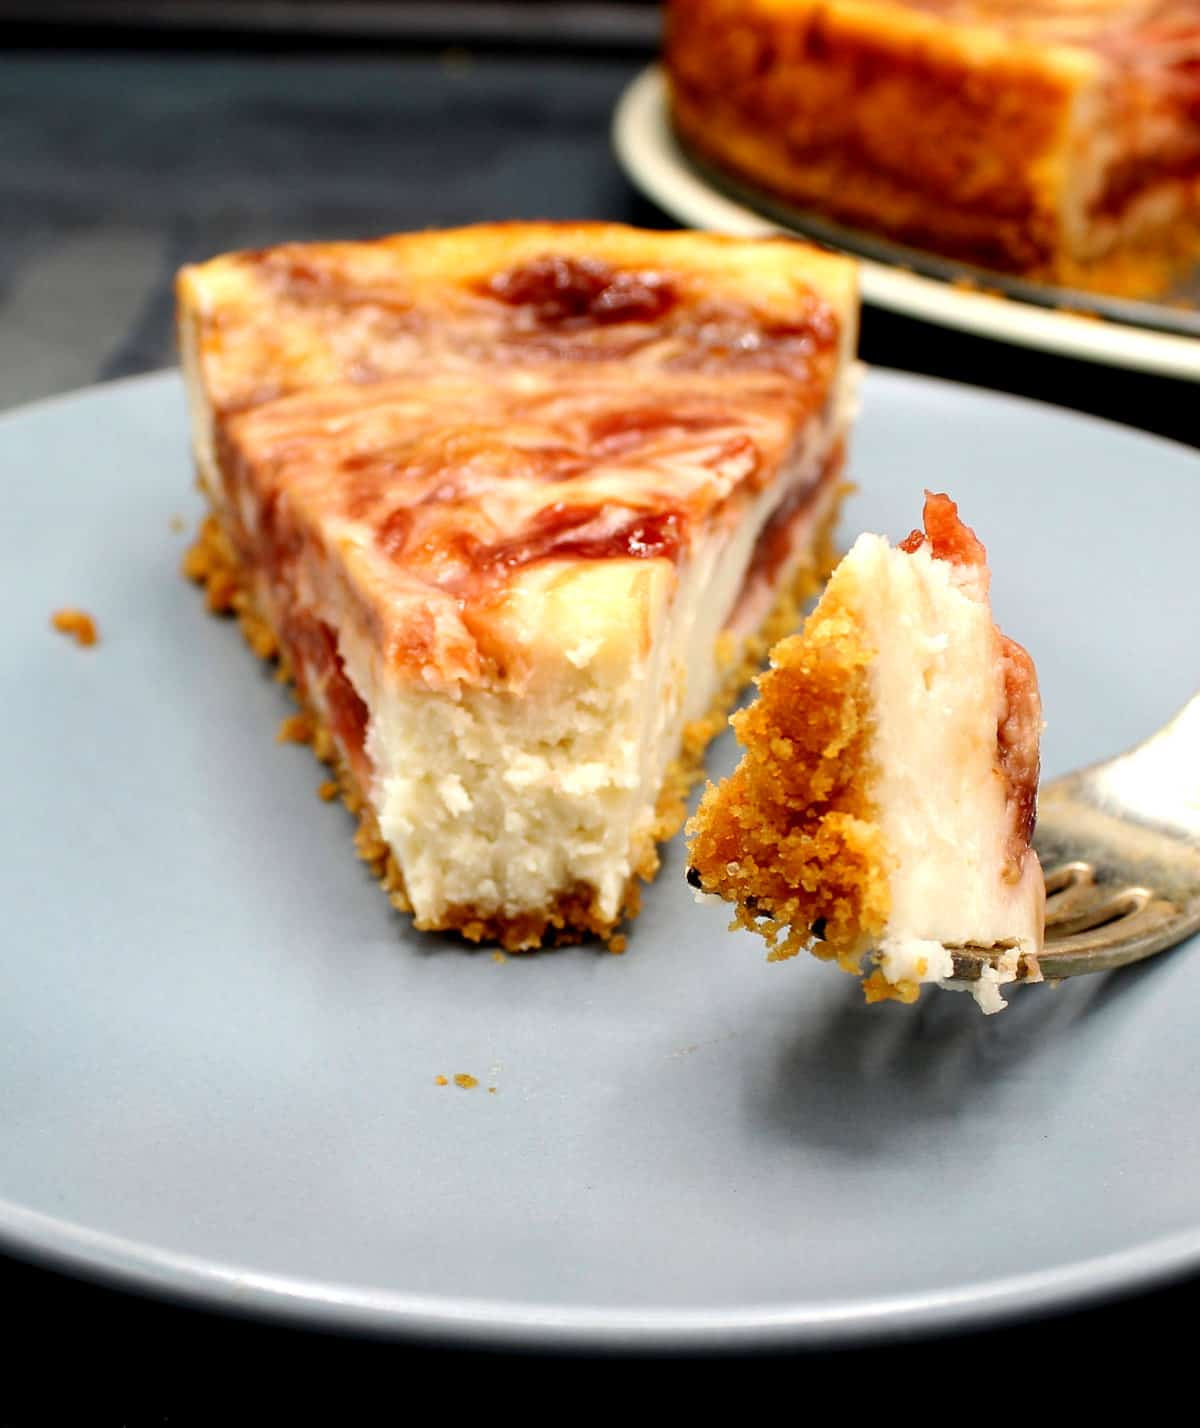 A slice of vegan rhubarb strawberry cheesecake with a morsel on a fork to show the creamy filling.